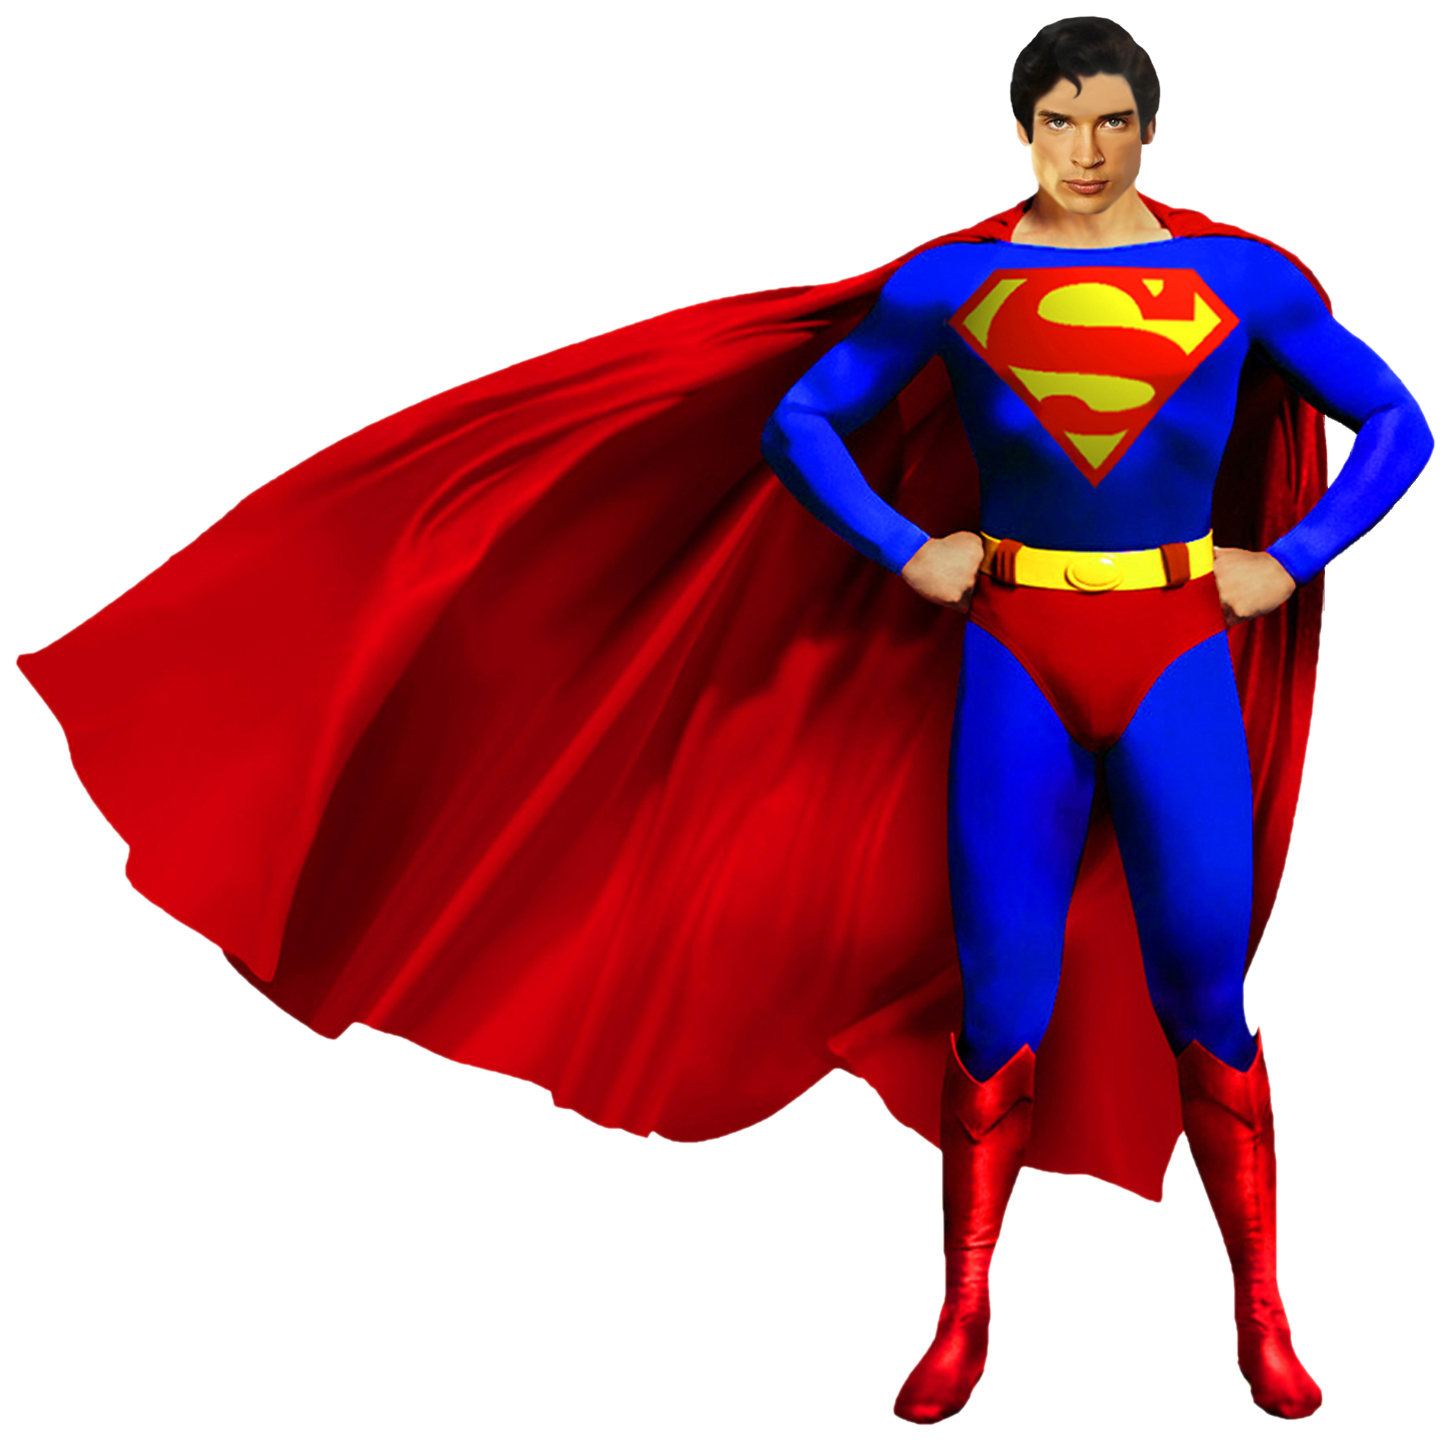 Tom Welling as Superman Imagery.